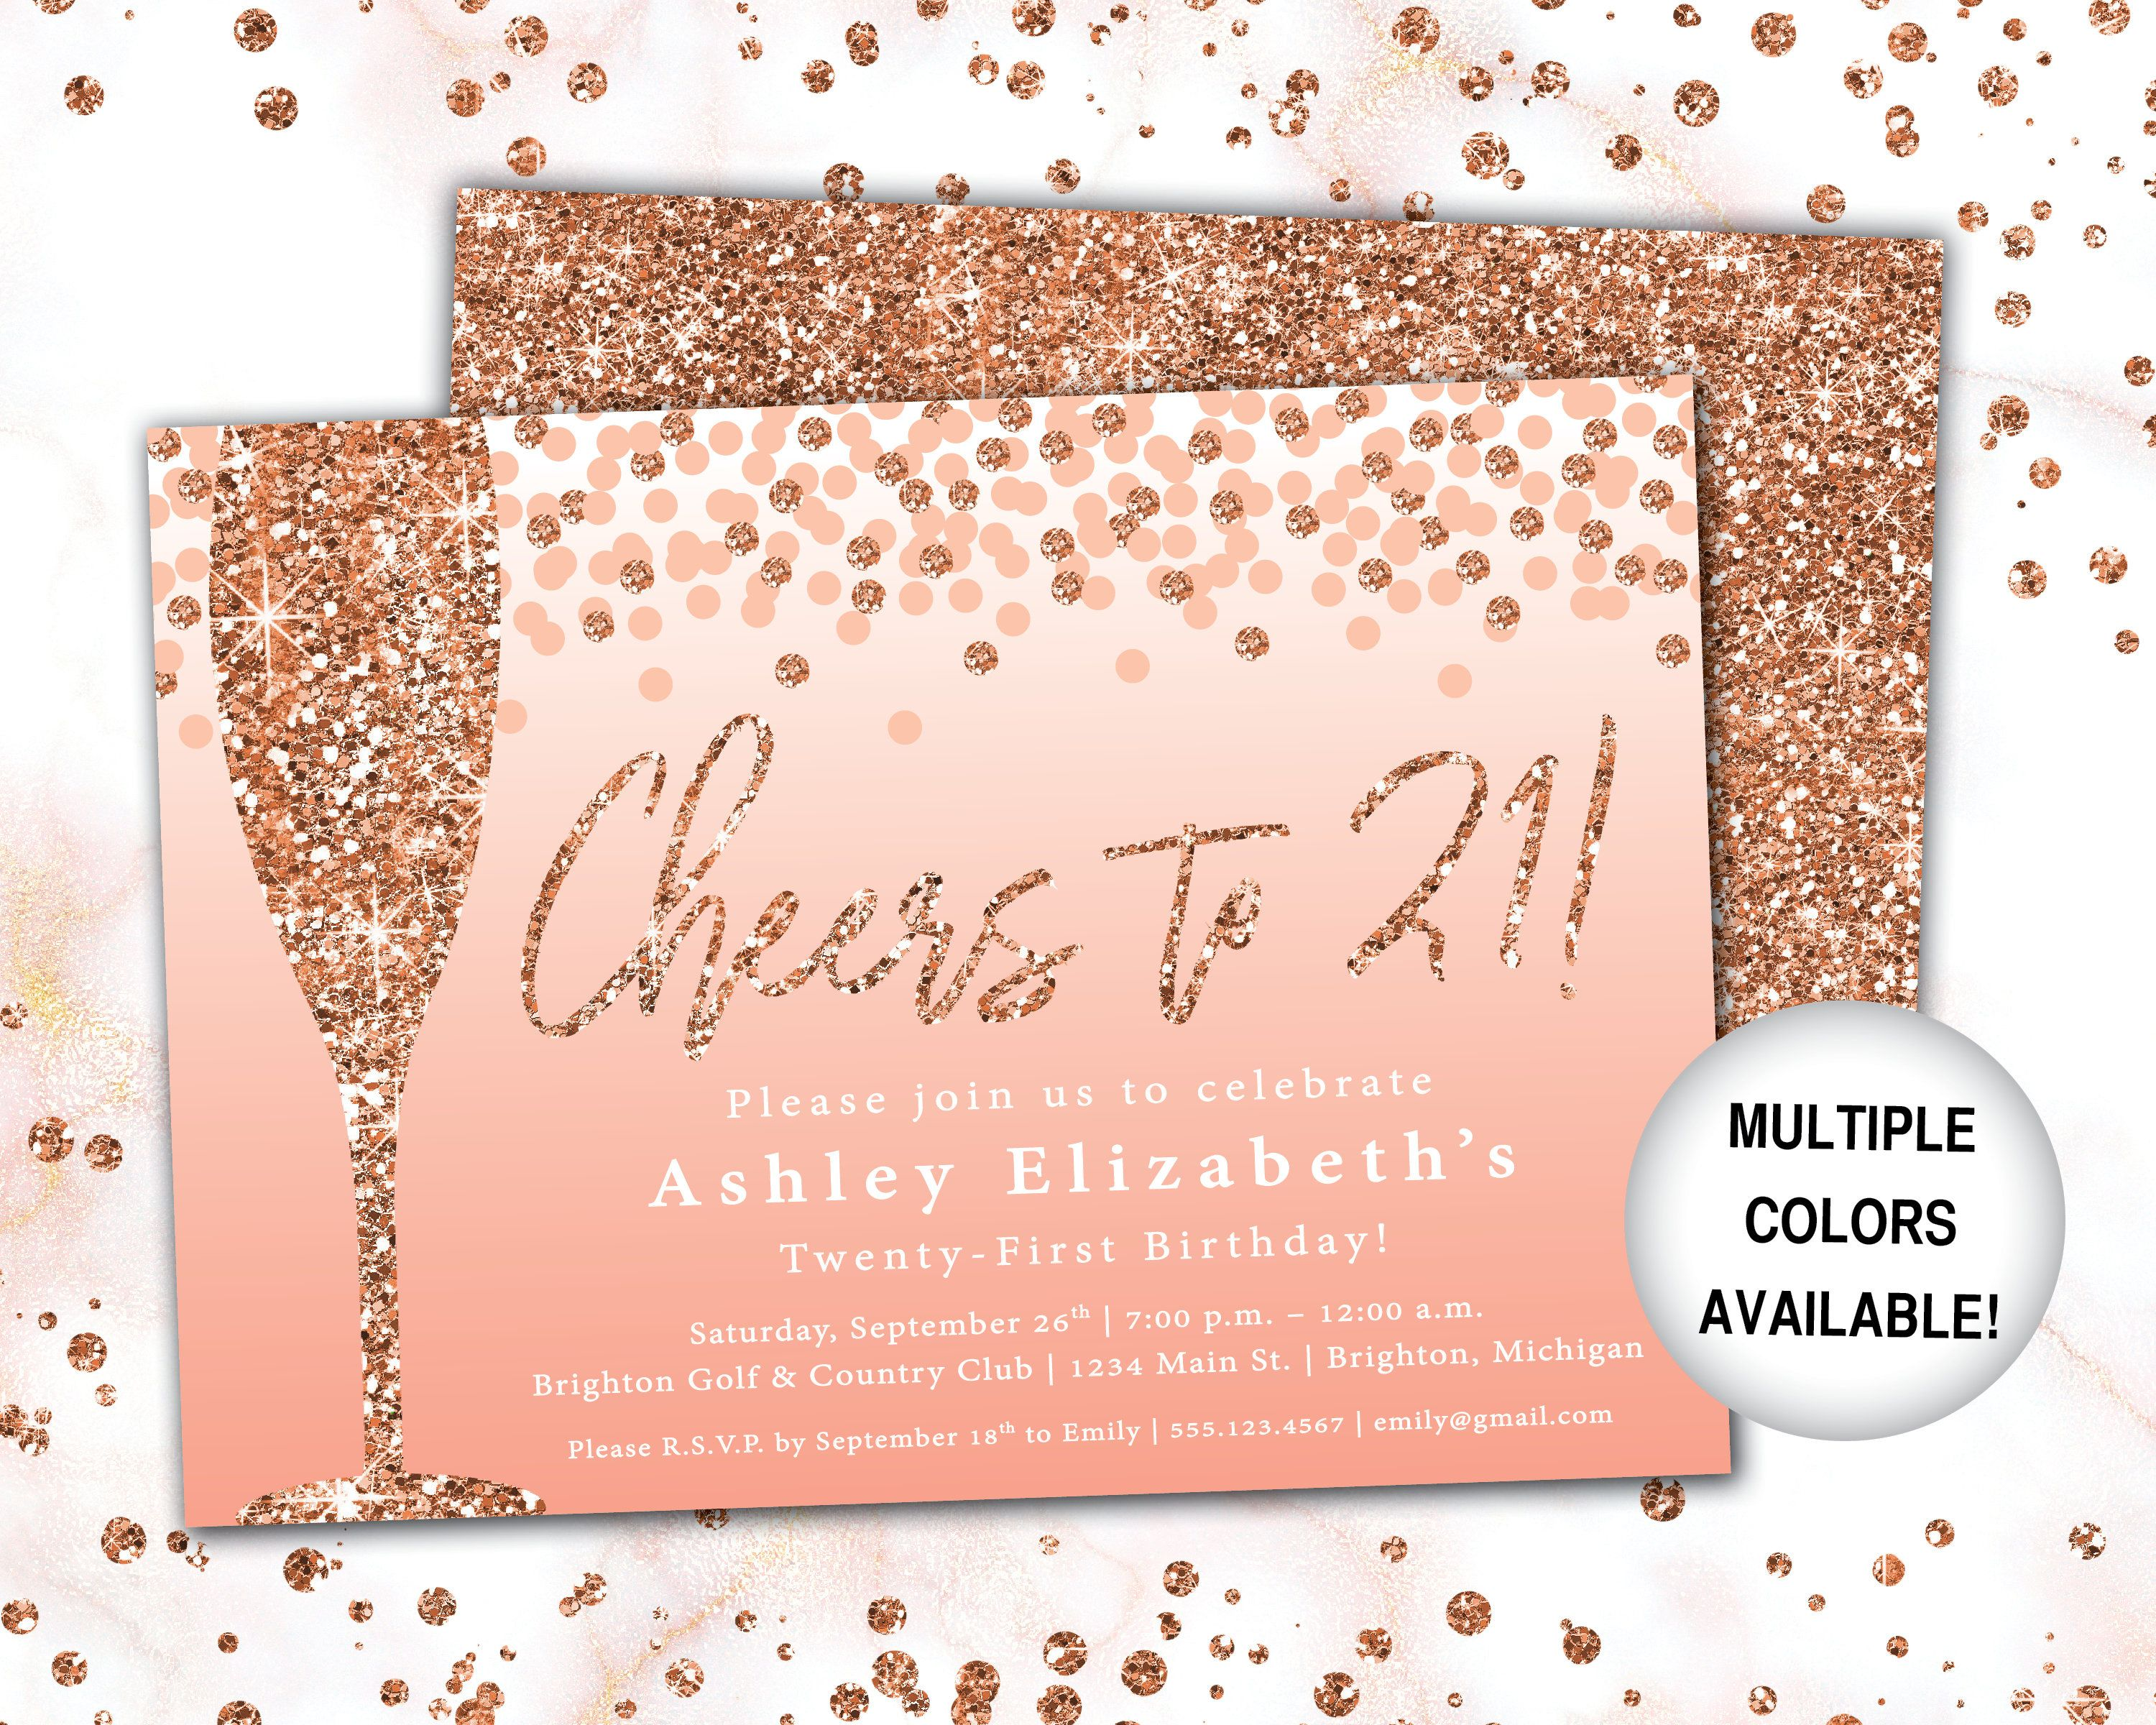 Cheers To 21 Invitation Rose Gold Champagne 21st Birthday Invitation Template Rose Gold Glit Rose Gold Invitations 21st Invitations 21st Birthday Invitations